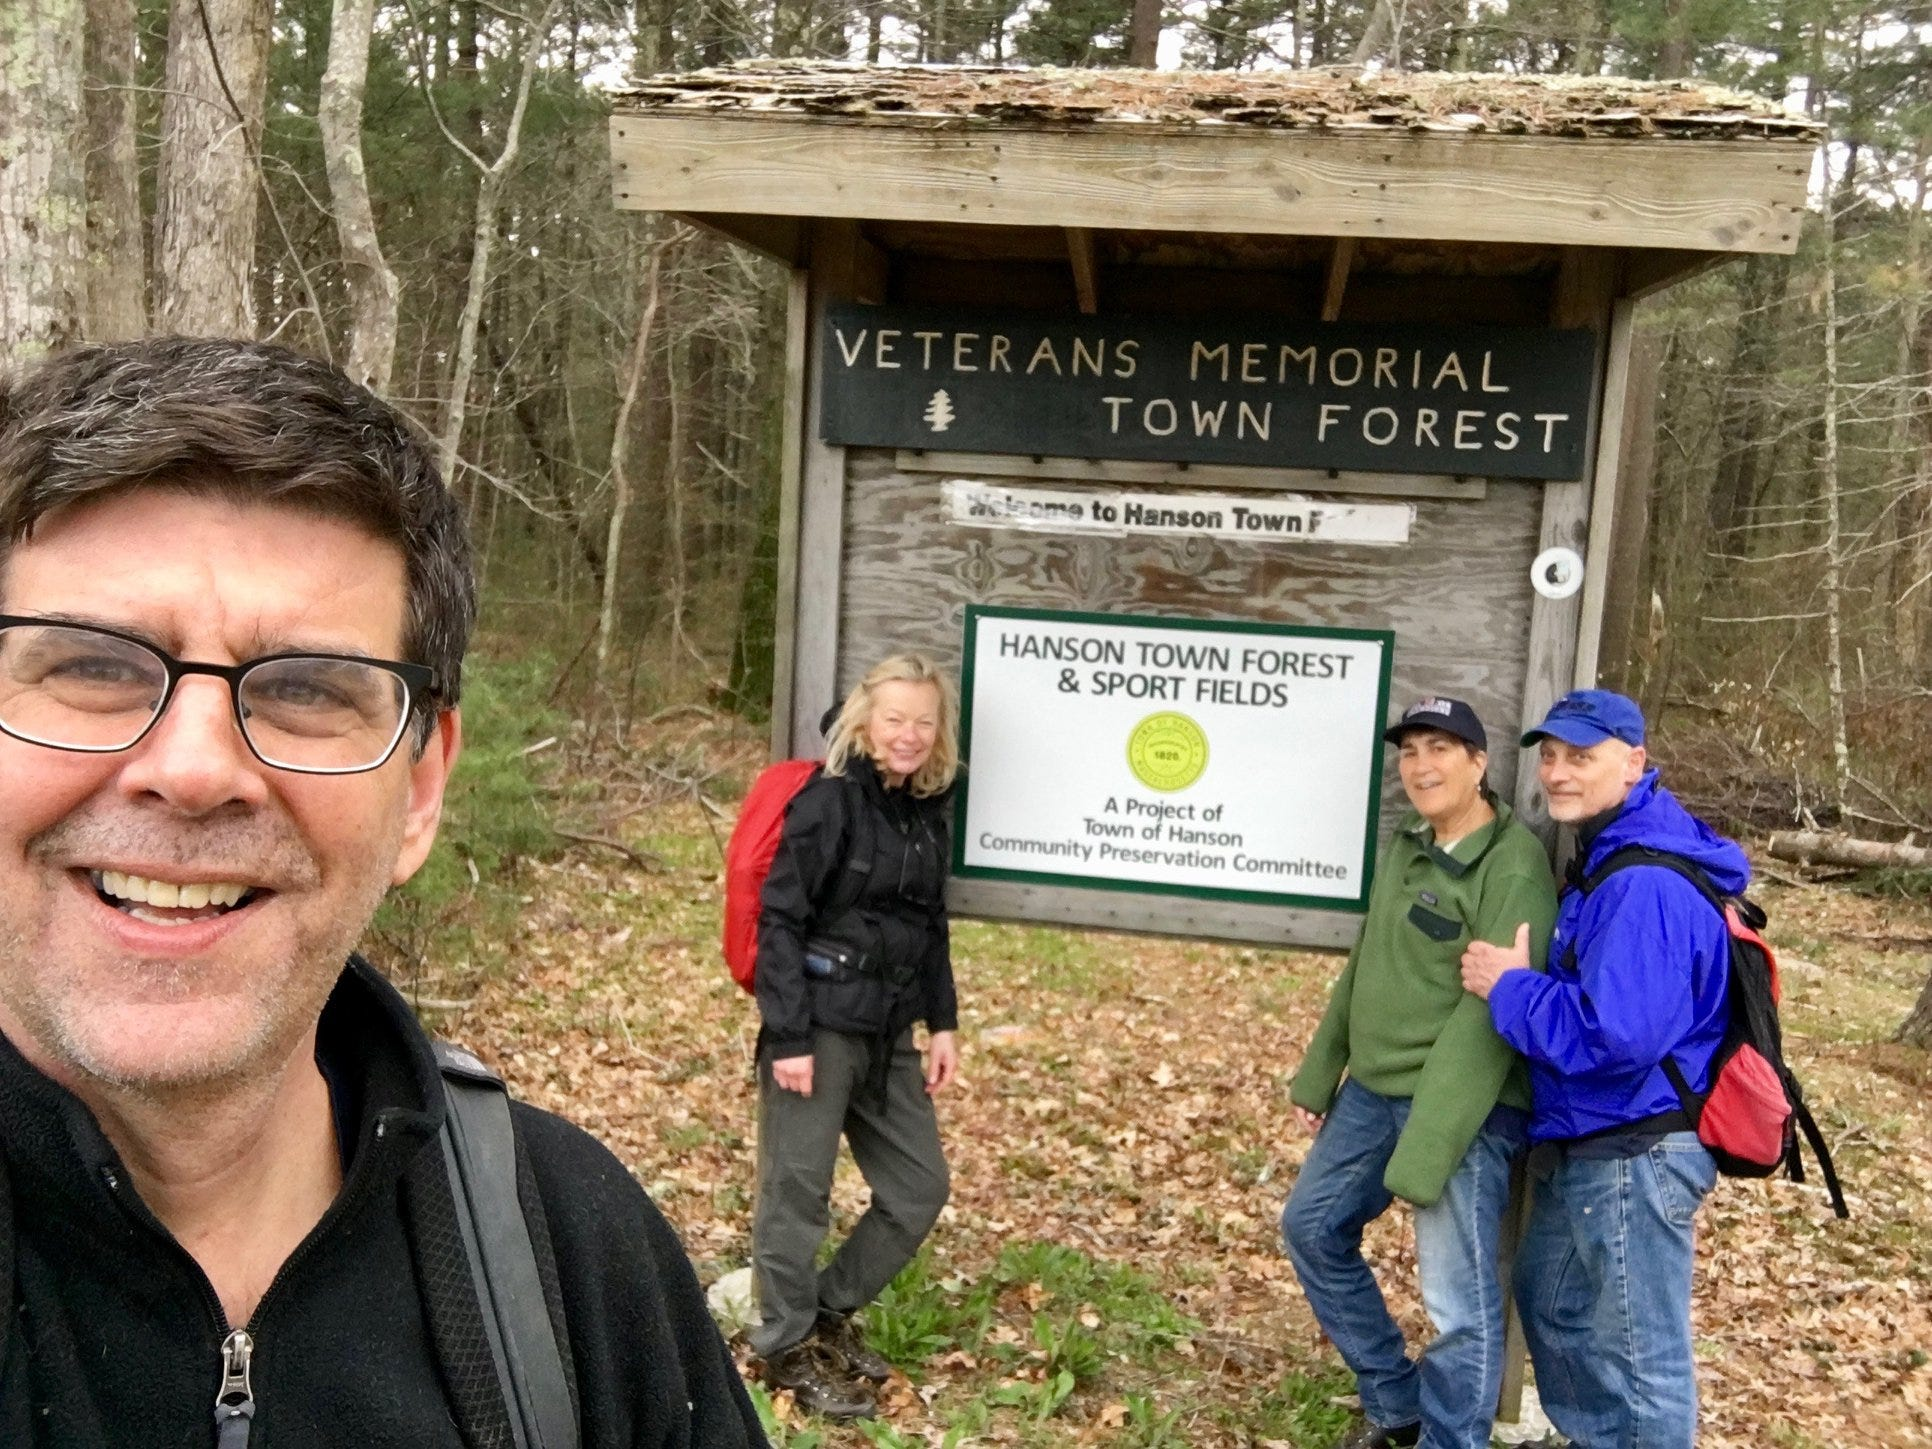 Author Rich Harbert takes a selfie with his hiking mates.